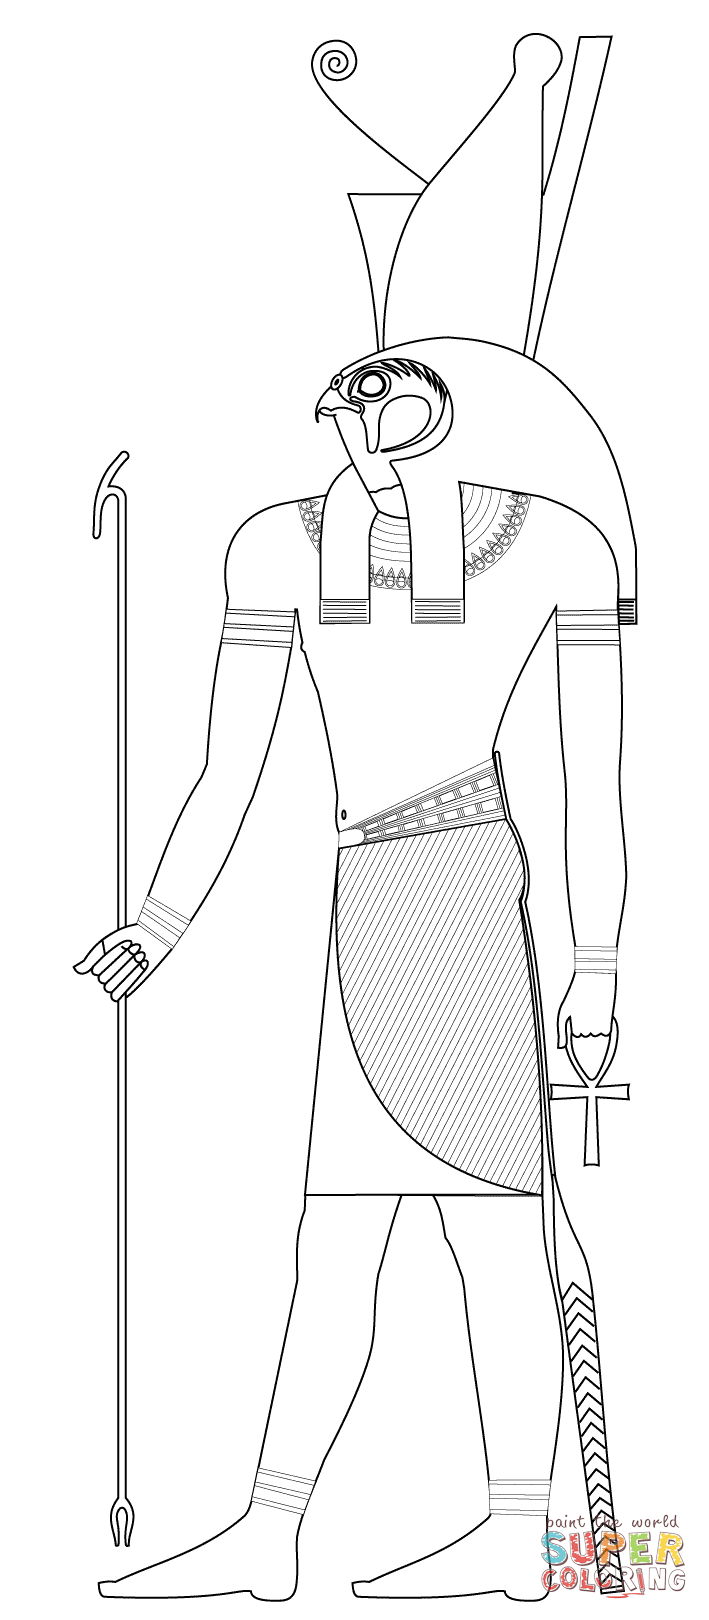 Joseph in egypt free coloring pages on art coloring pages - Egyptian Patterns To Colour Google Search Adult Coloringcoloring Pagesancient Egyptjoseph